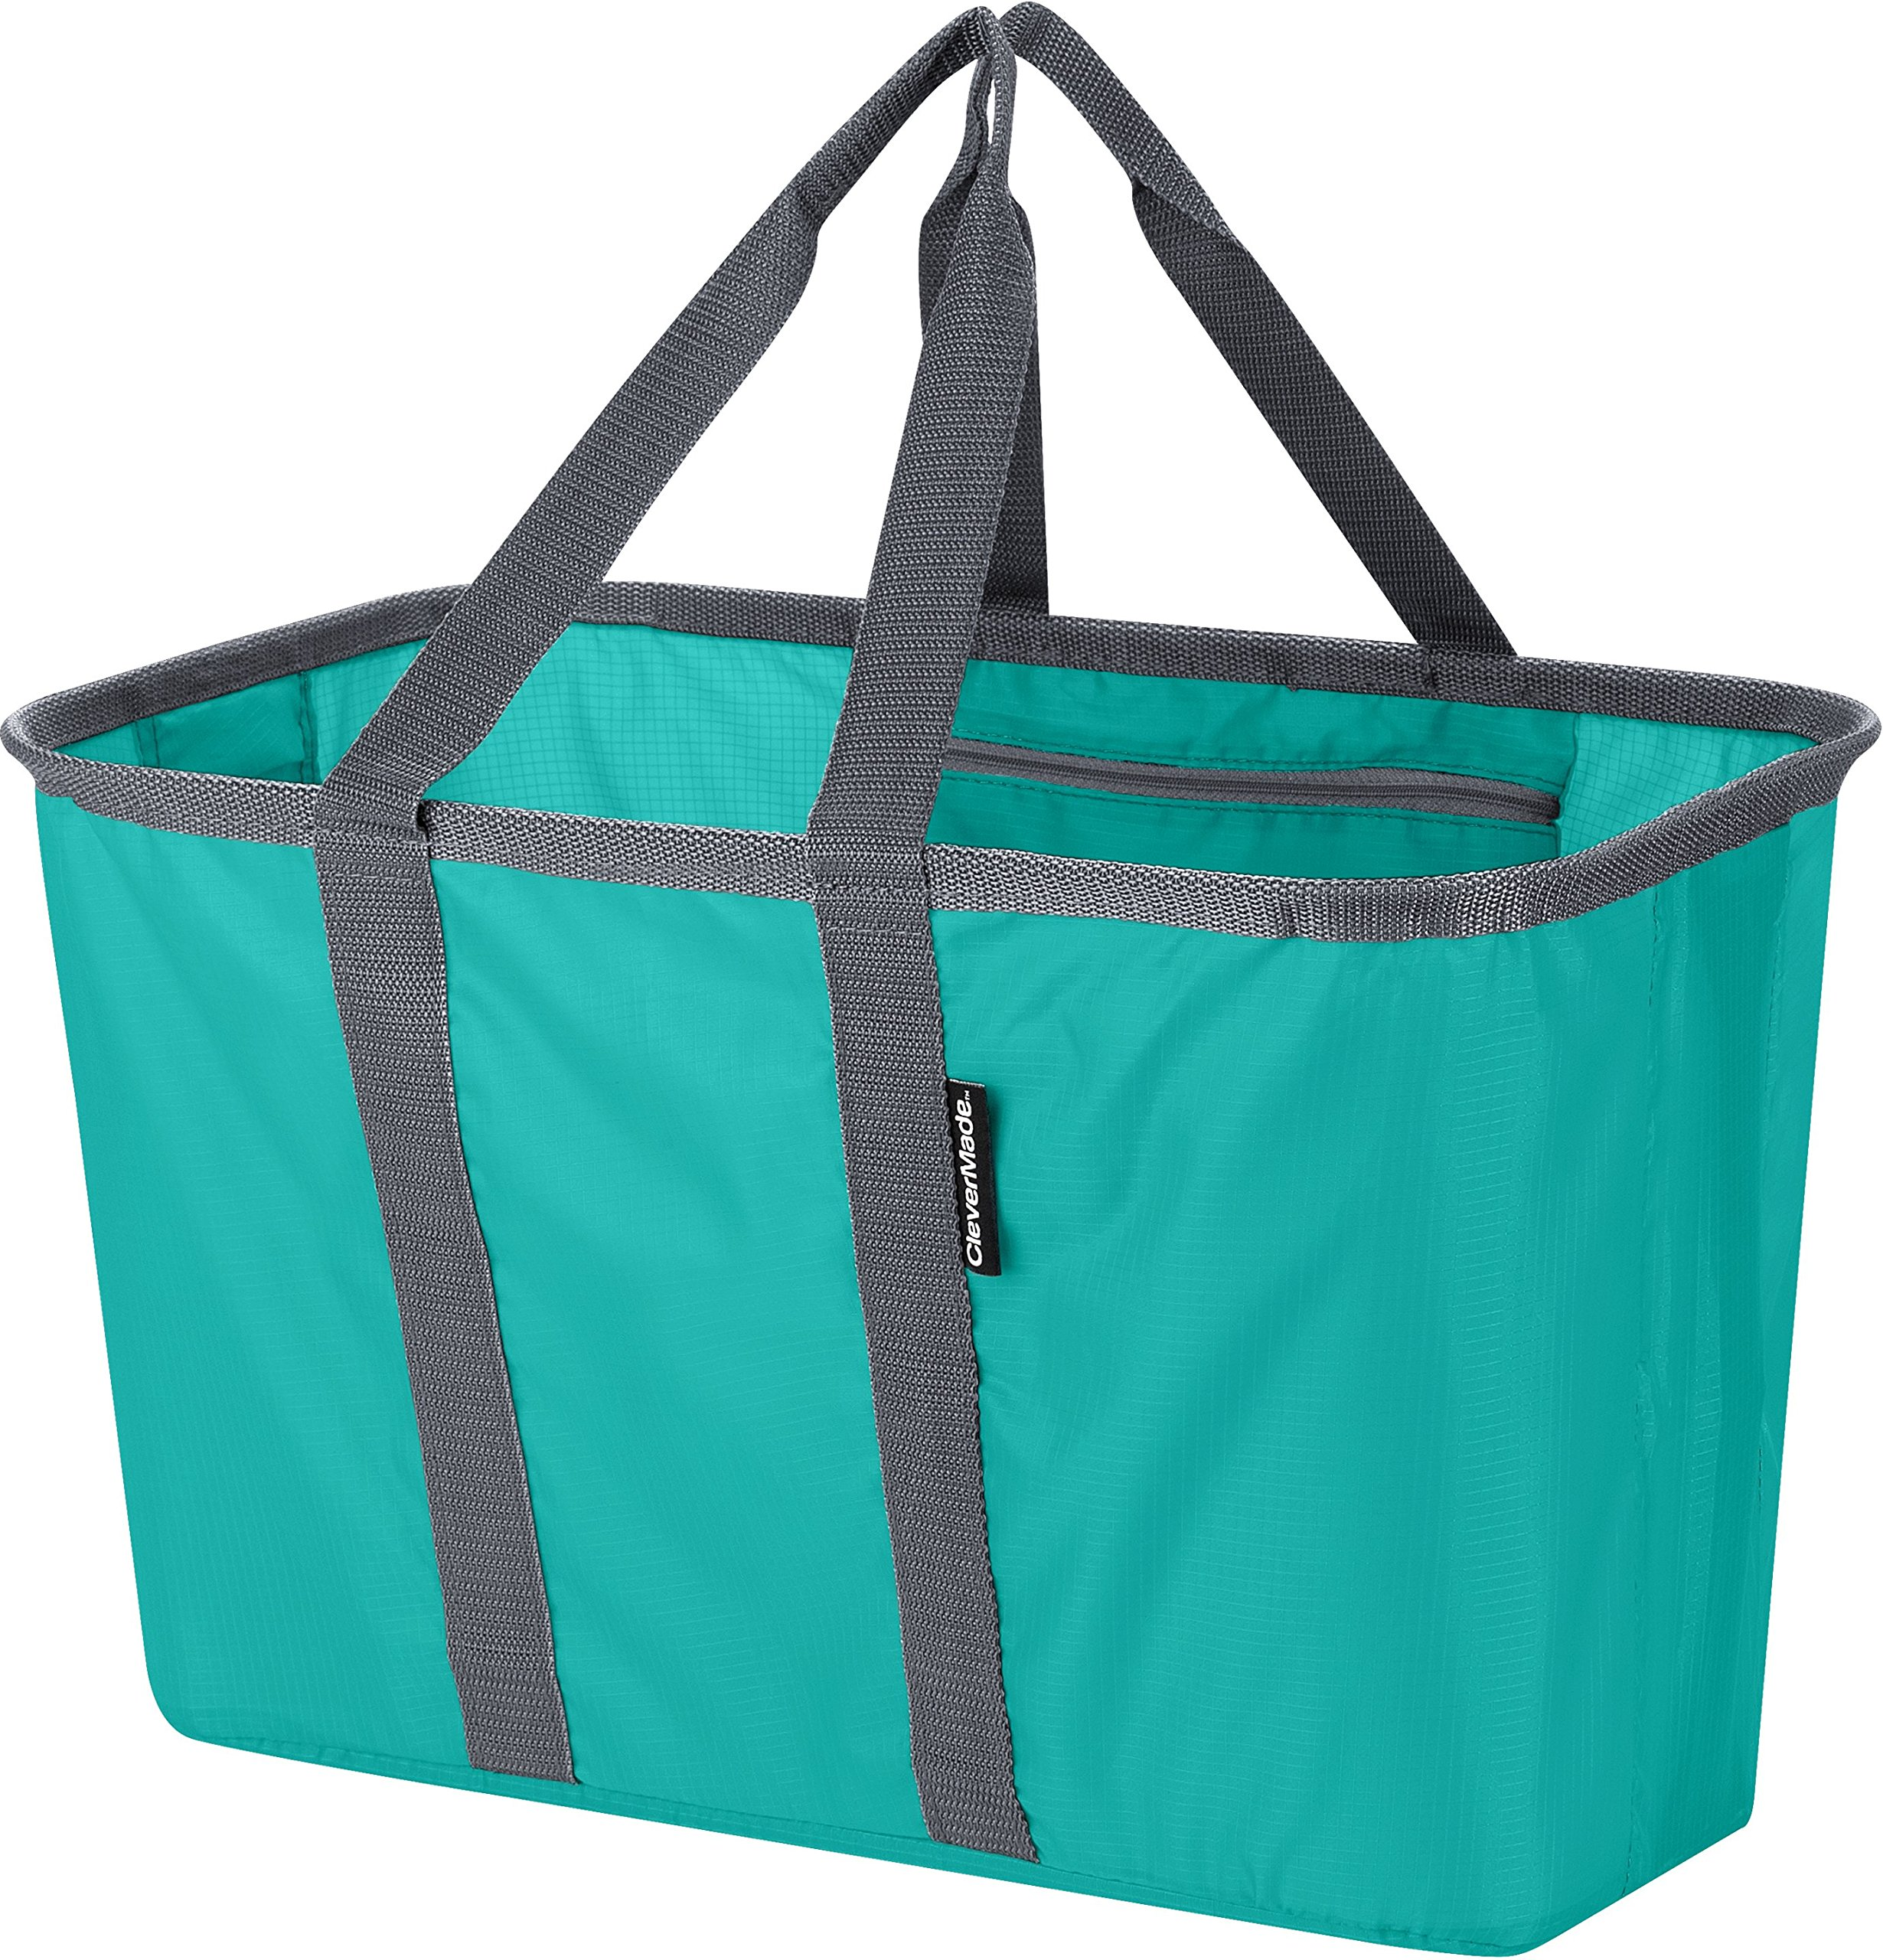 CleverMade Snapbasket 30 Liter Reusable Tote Bag with Reinforced Bottom: Collapsible Grocery Shopping Basket, Teal/Charcoal